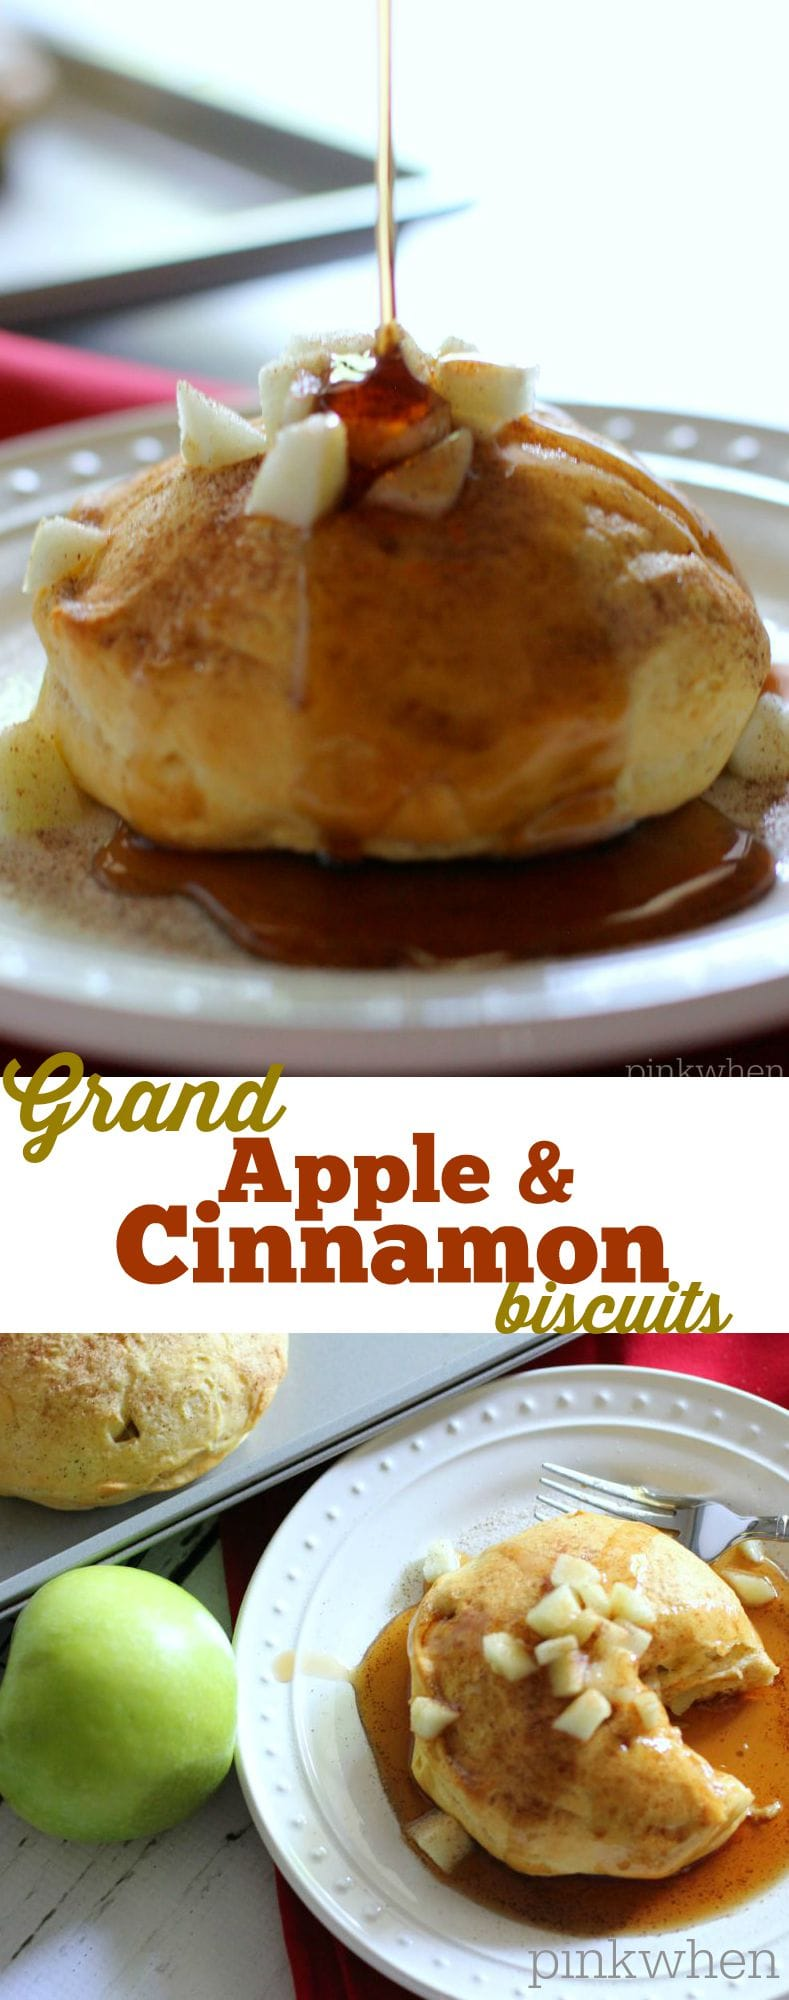 Grand Apple and Cinnamon Biscuit |PinkWhen